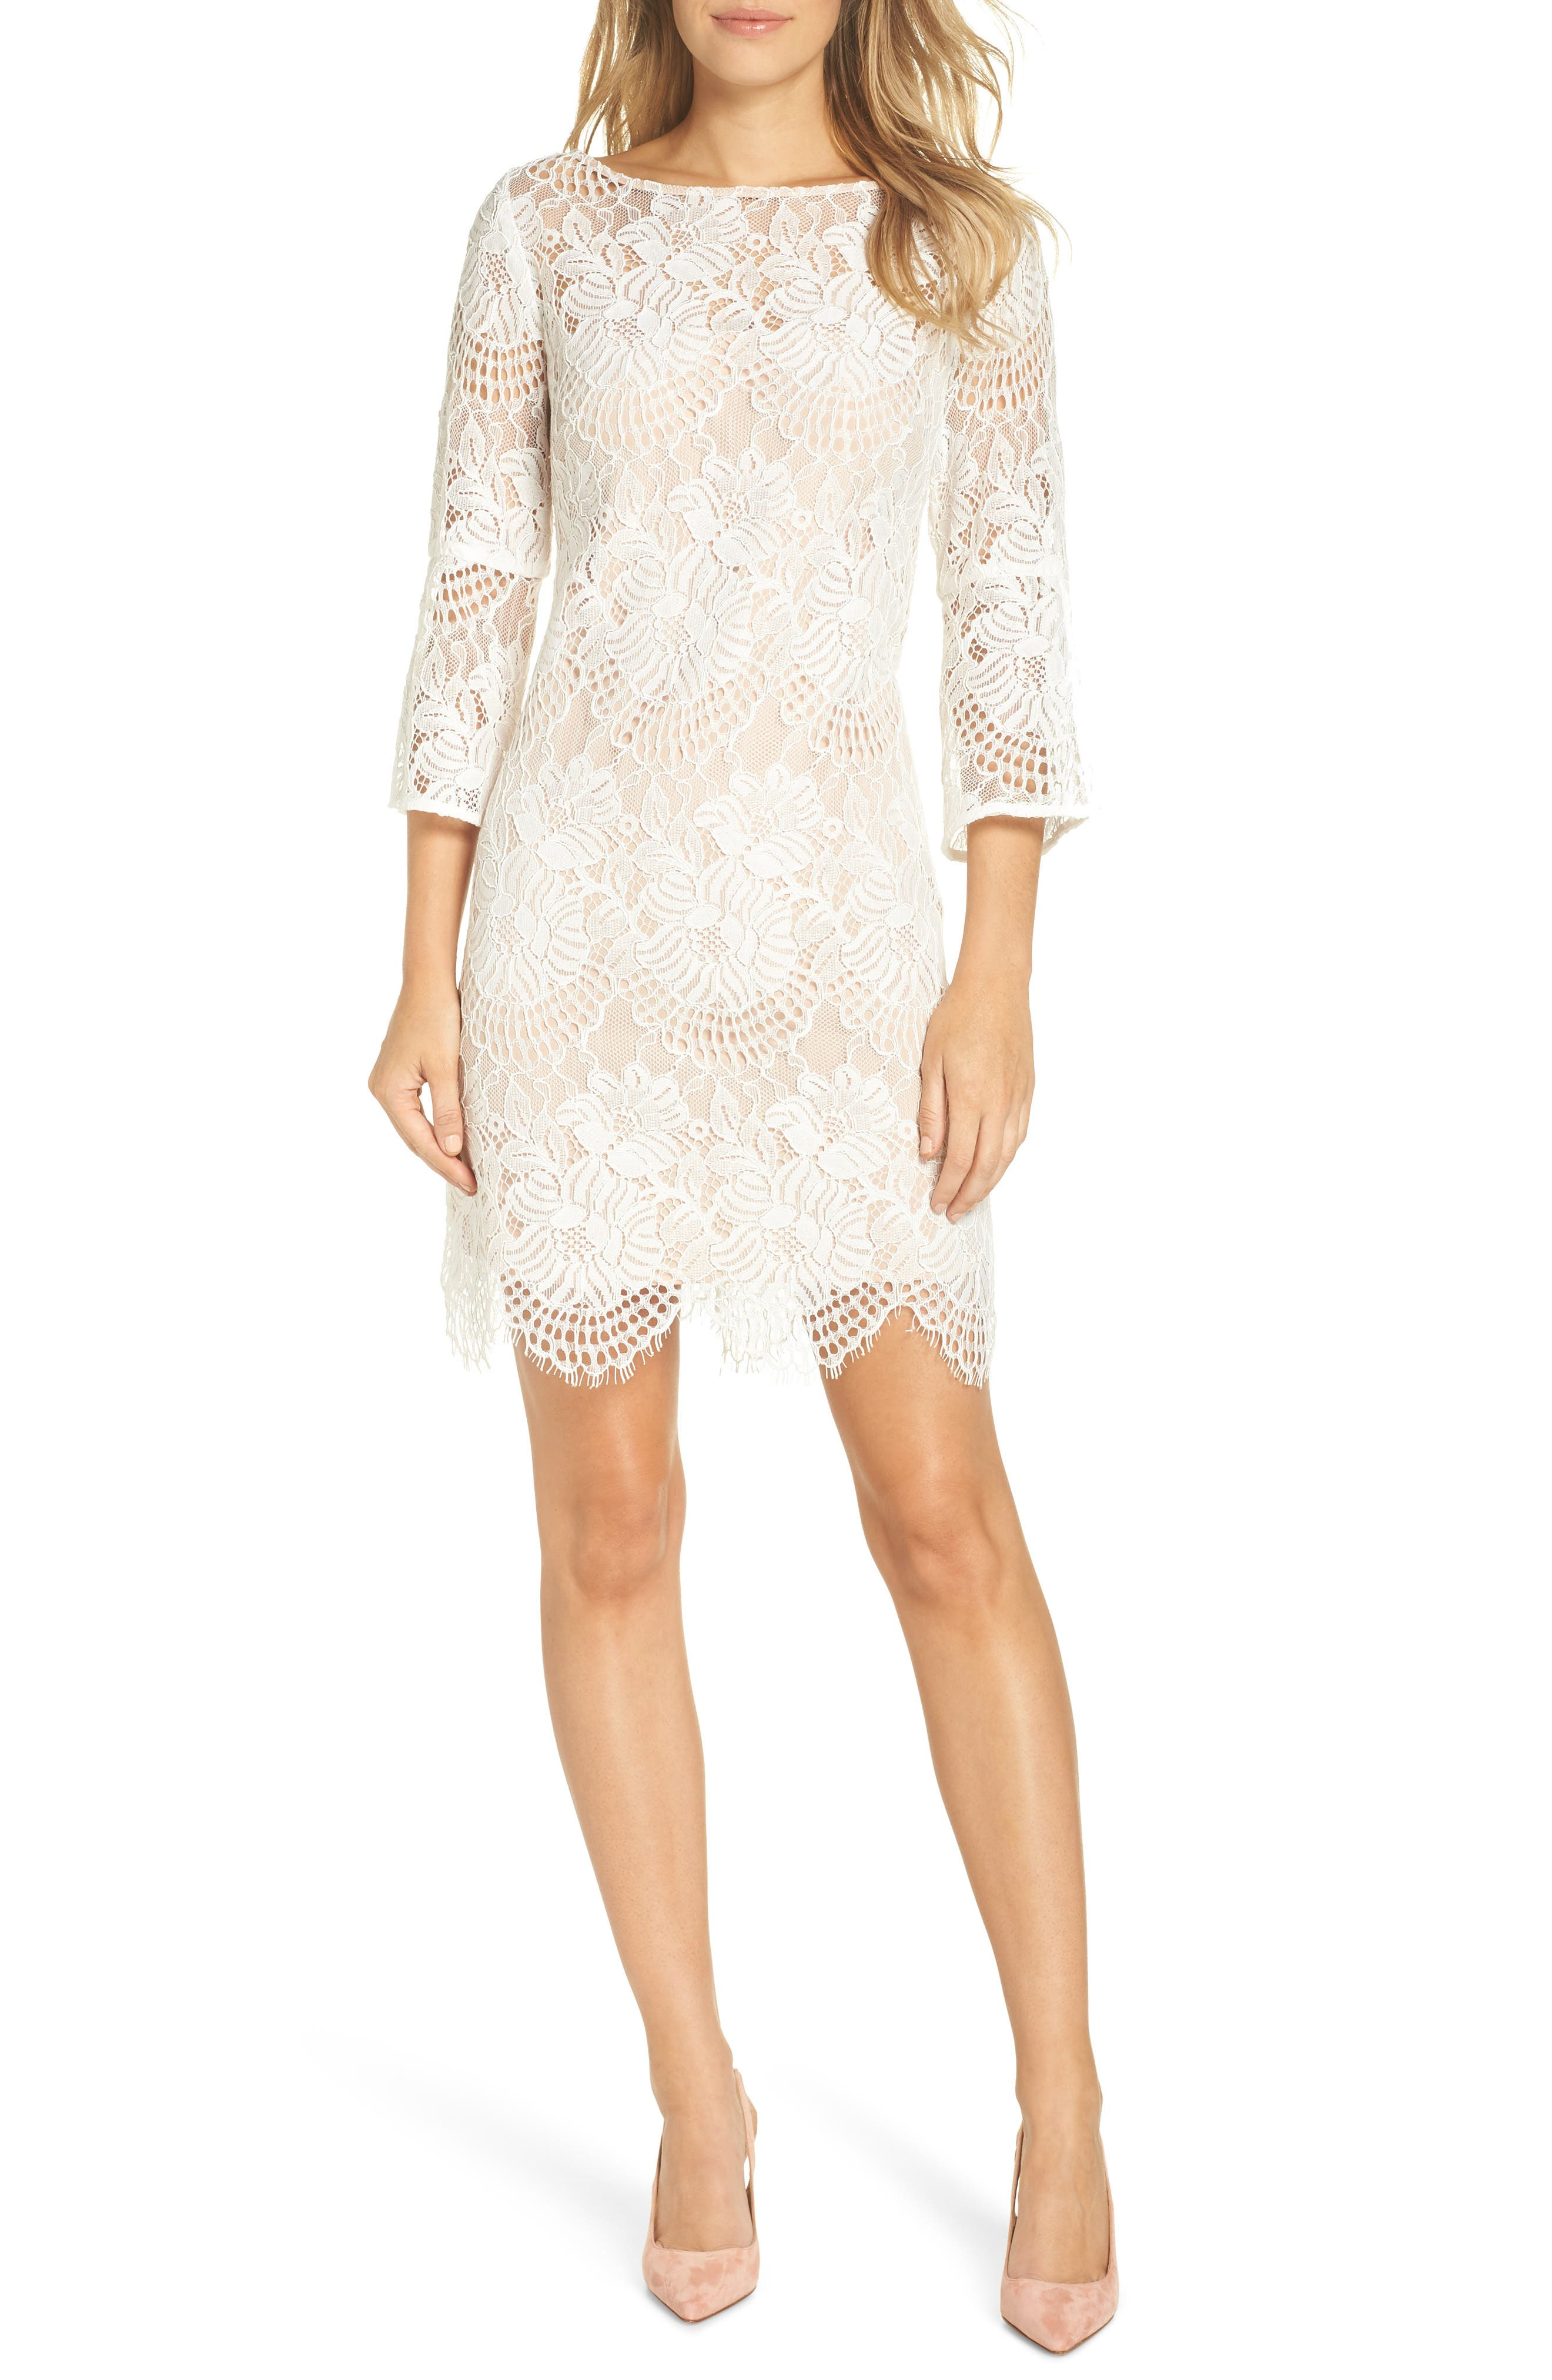 Vince Camuto Lace Shift Dress, Ivory